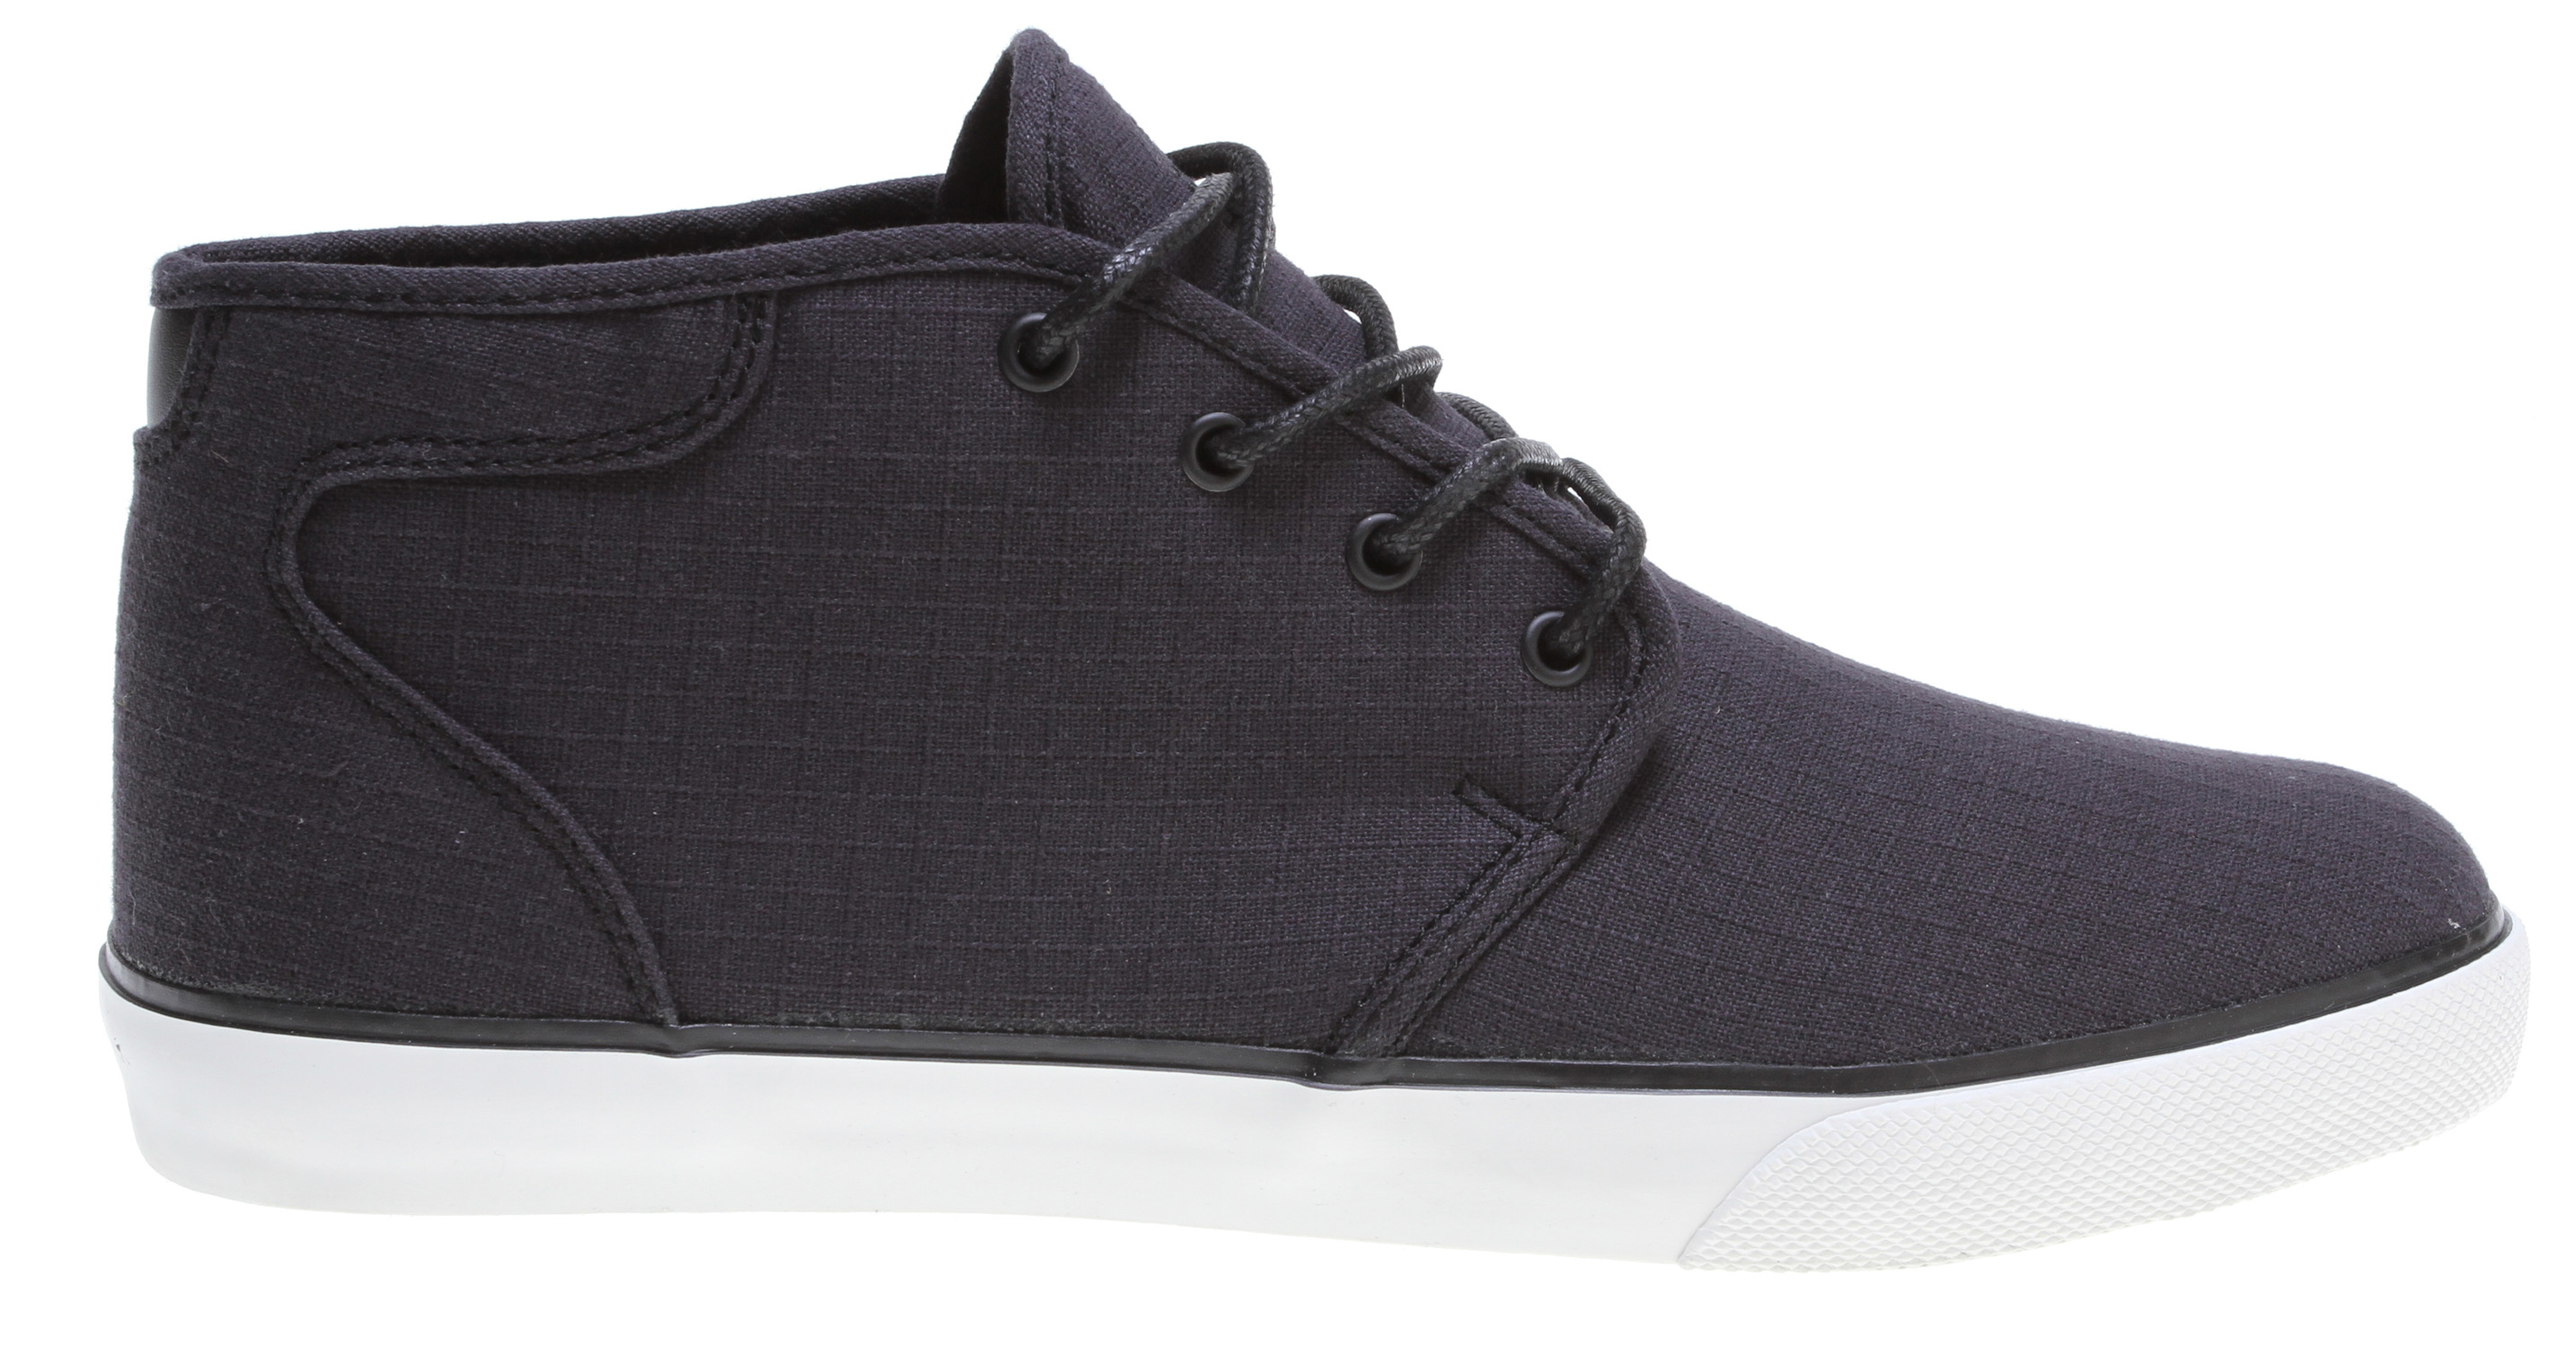 Skateboard DC Studio Mid TX Skate Shoes - $44.95